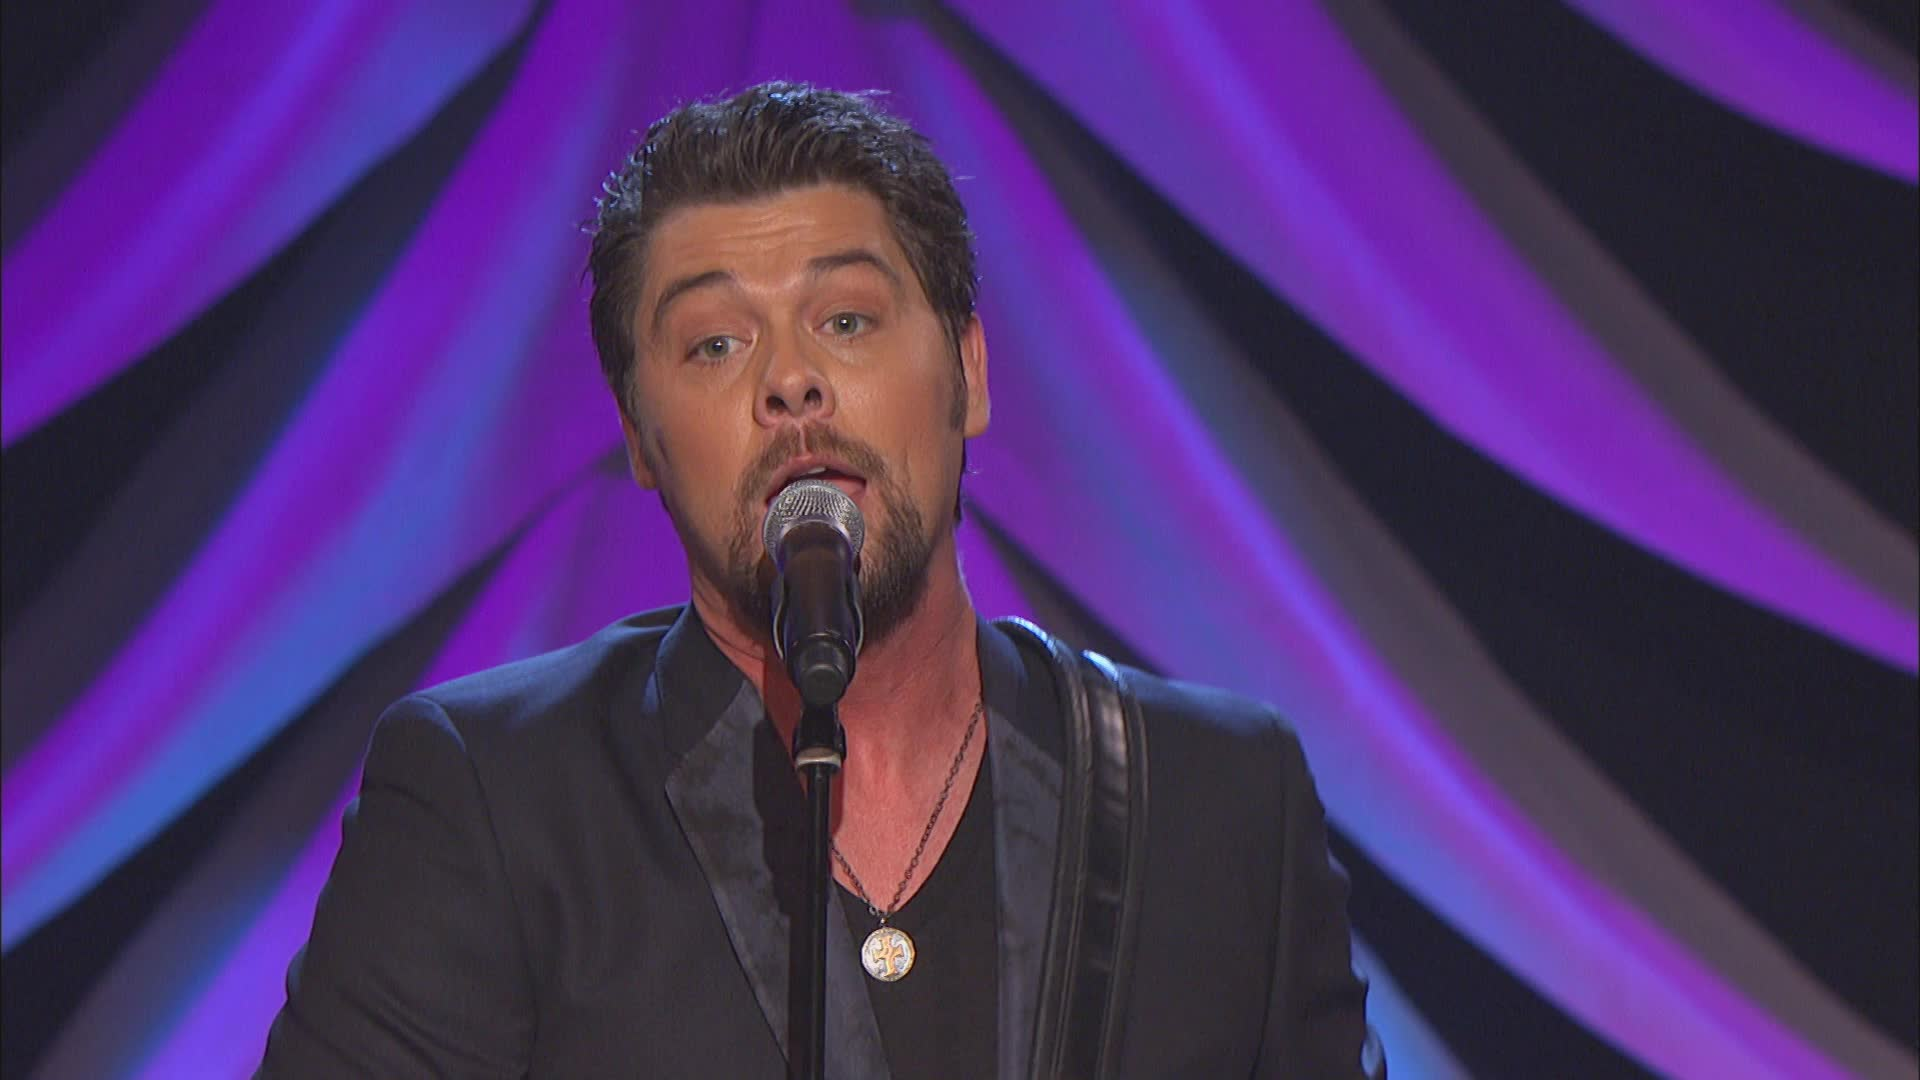 Jason Crabb - The Everlasting Arms / The Meeting In The Air / I'll Fly Away